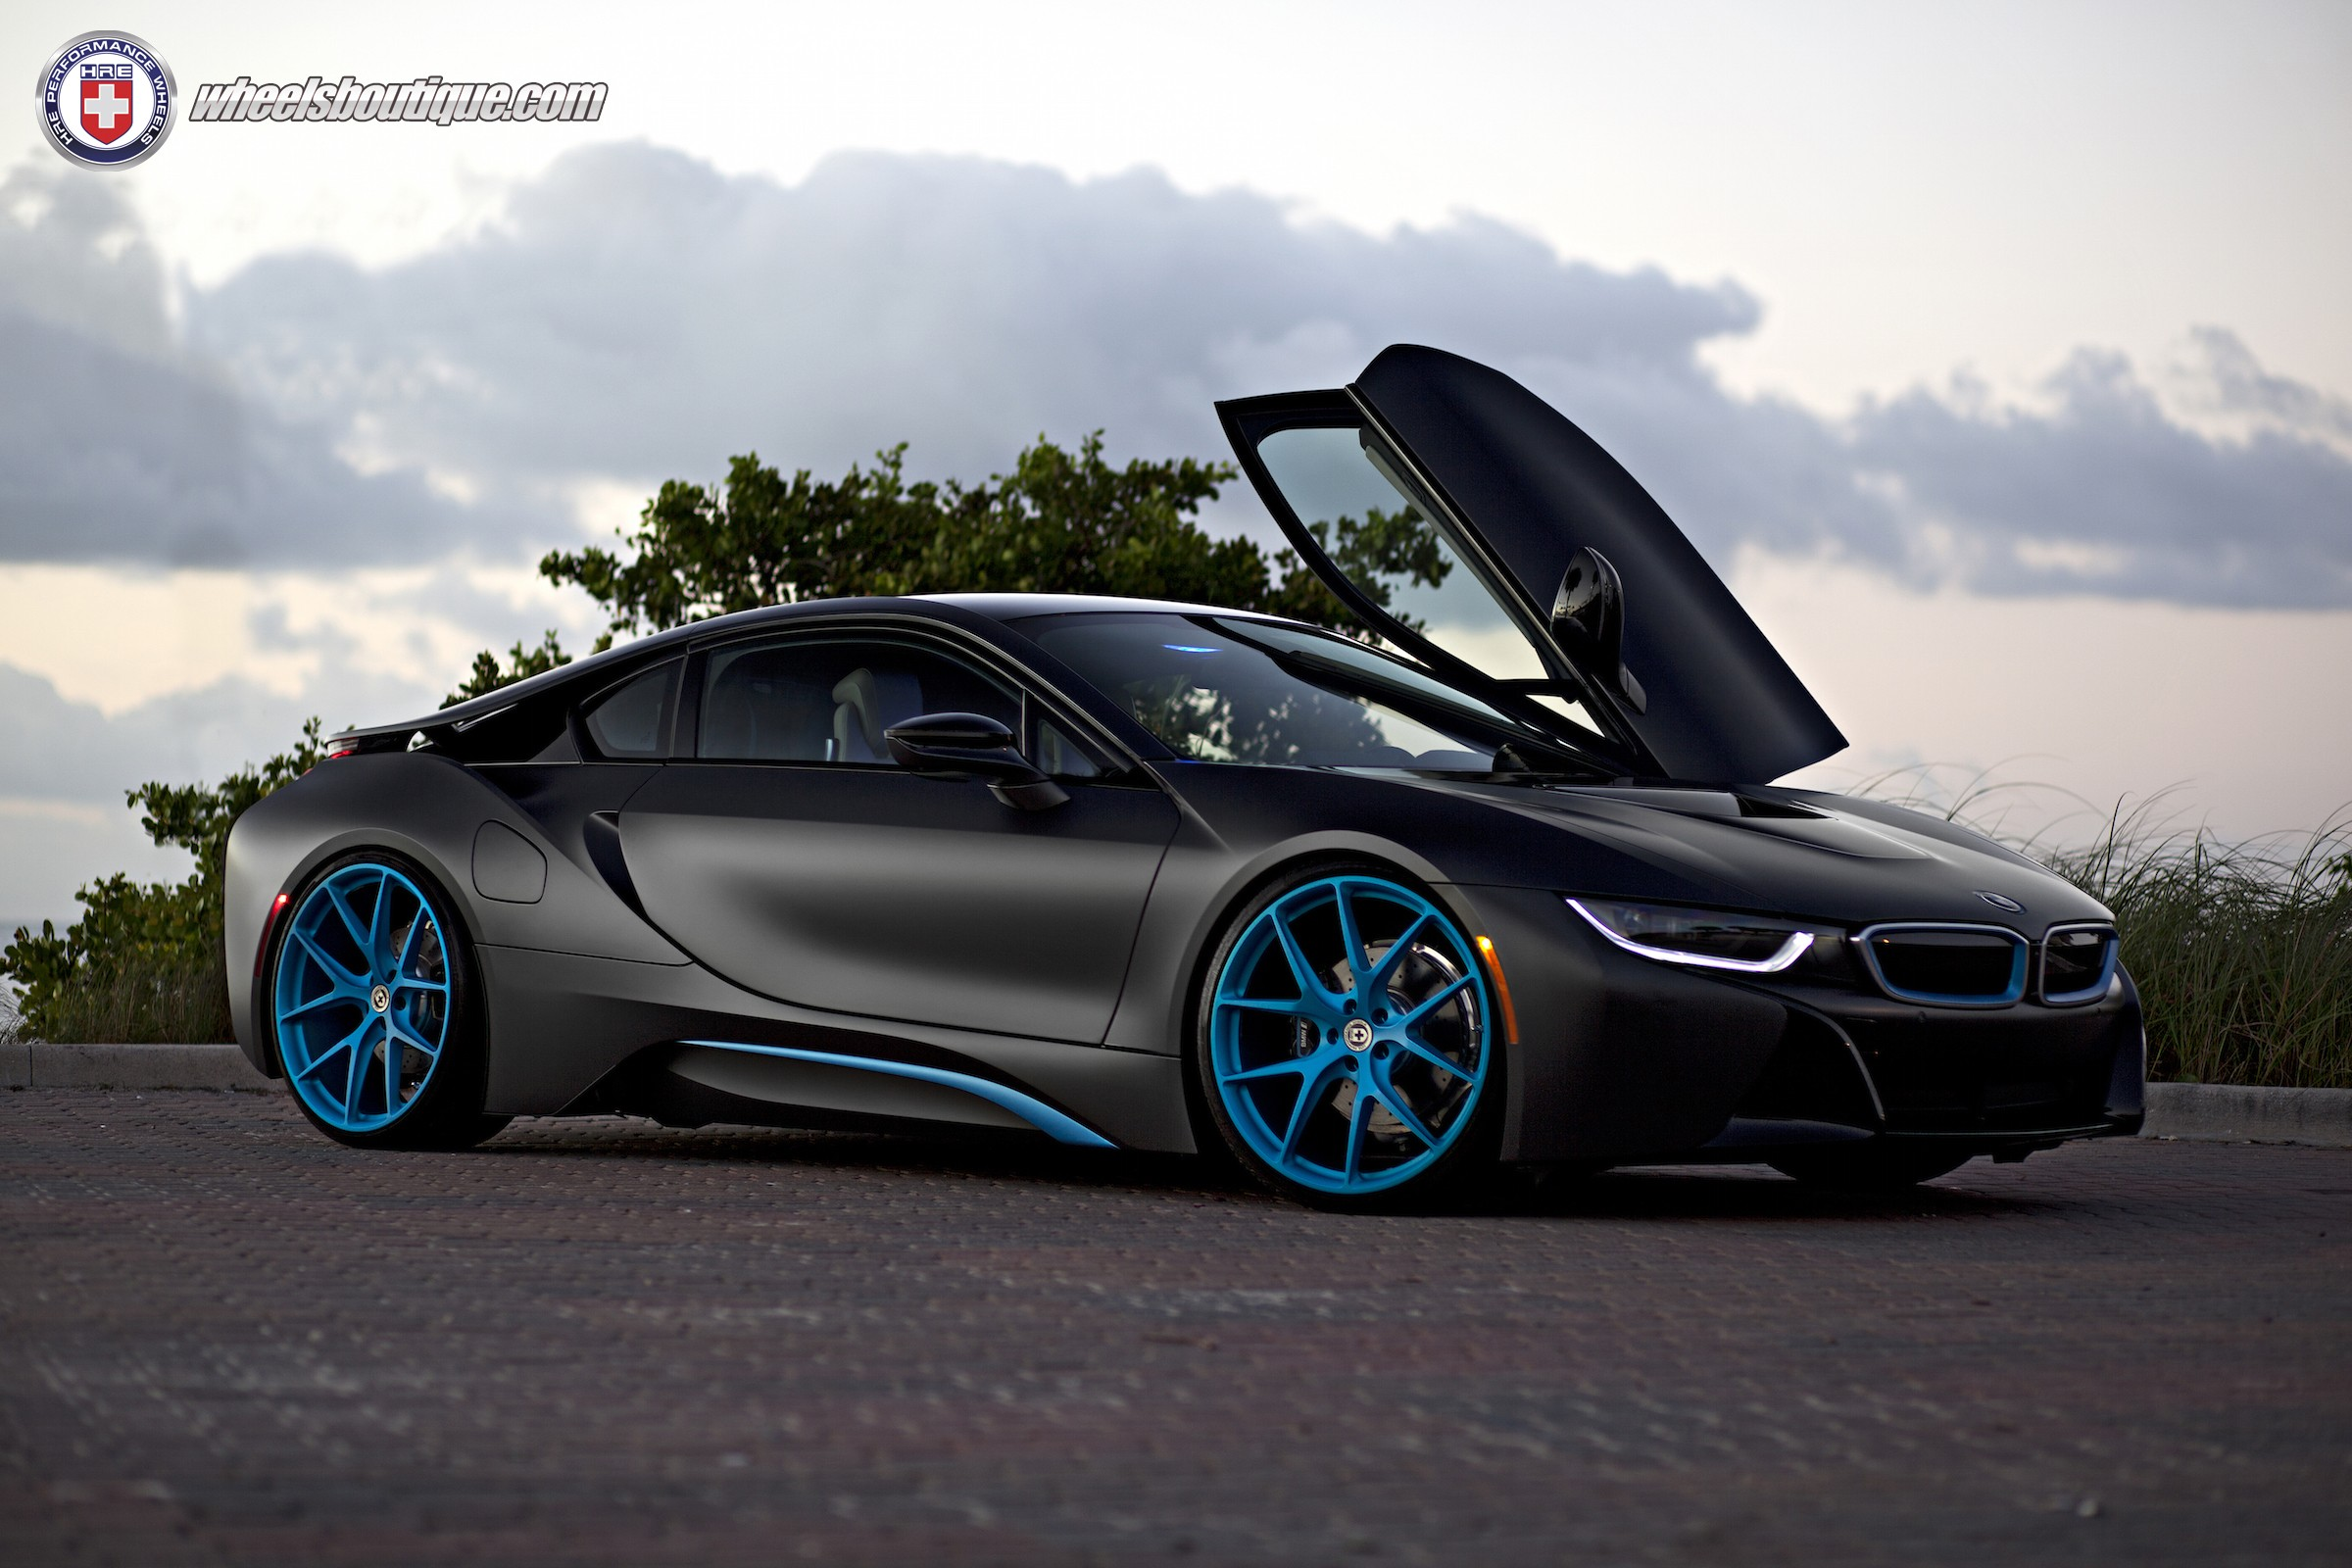 Idbeherfriend Bmw I8 Black And Blue Images